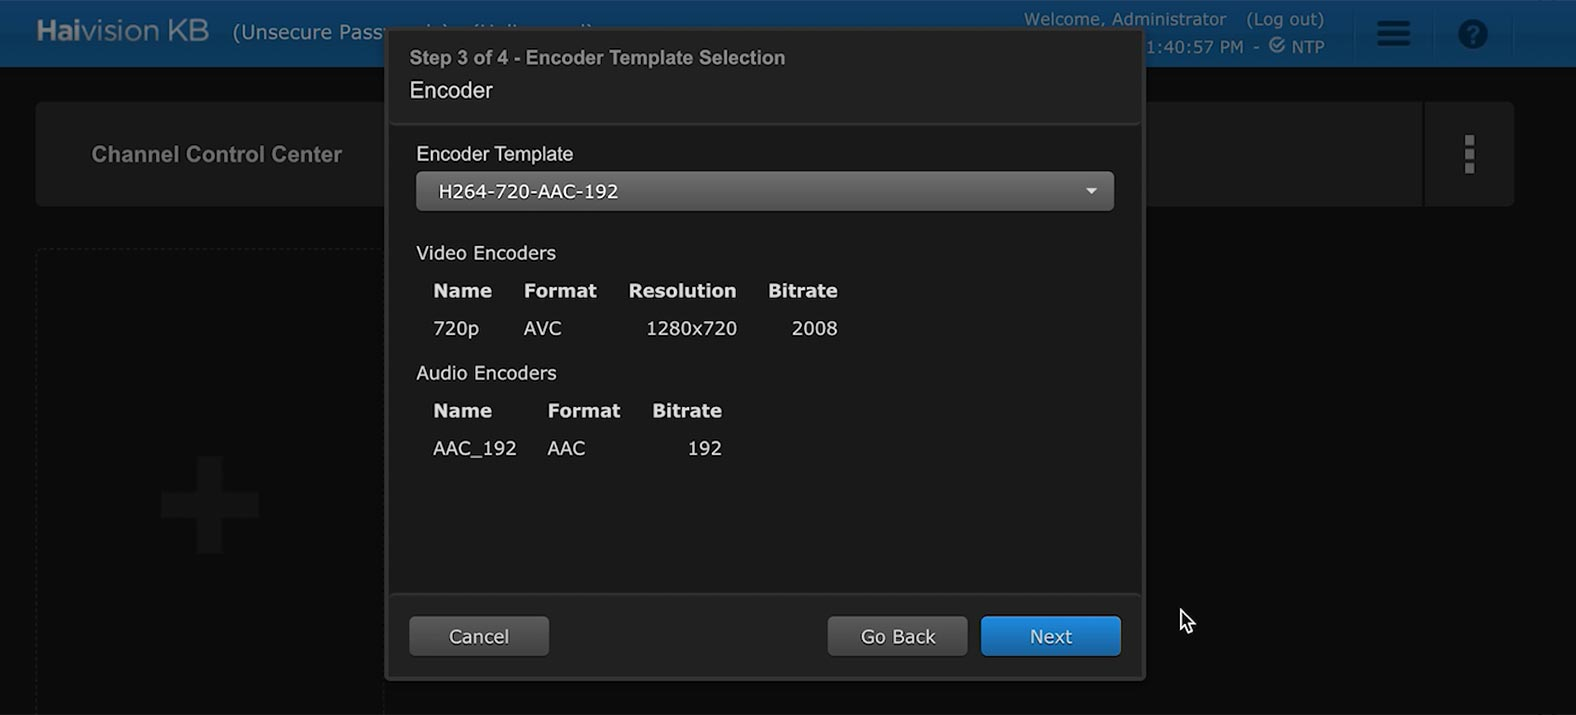 Setting up your encoder template in the Haivision KB video encoder